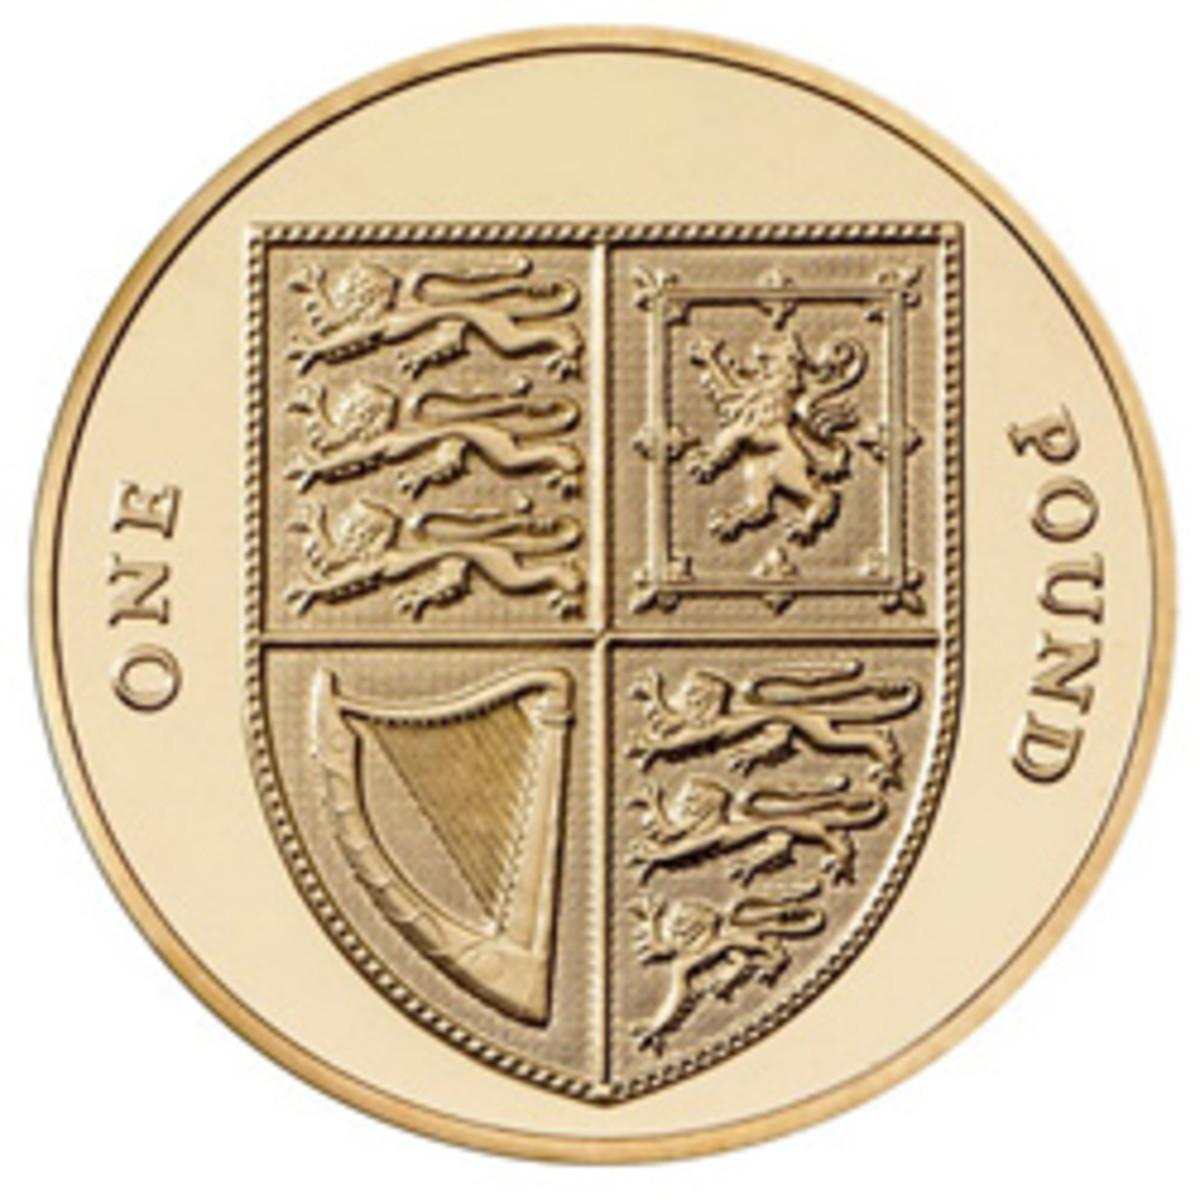 Reverse of the nickel-brass round £1 coin featuring the Shield of the Royal Arms (KM1113) in use between 2008 and 2017. (Image courtesy www.royalmint.com)